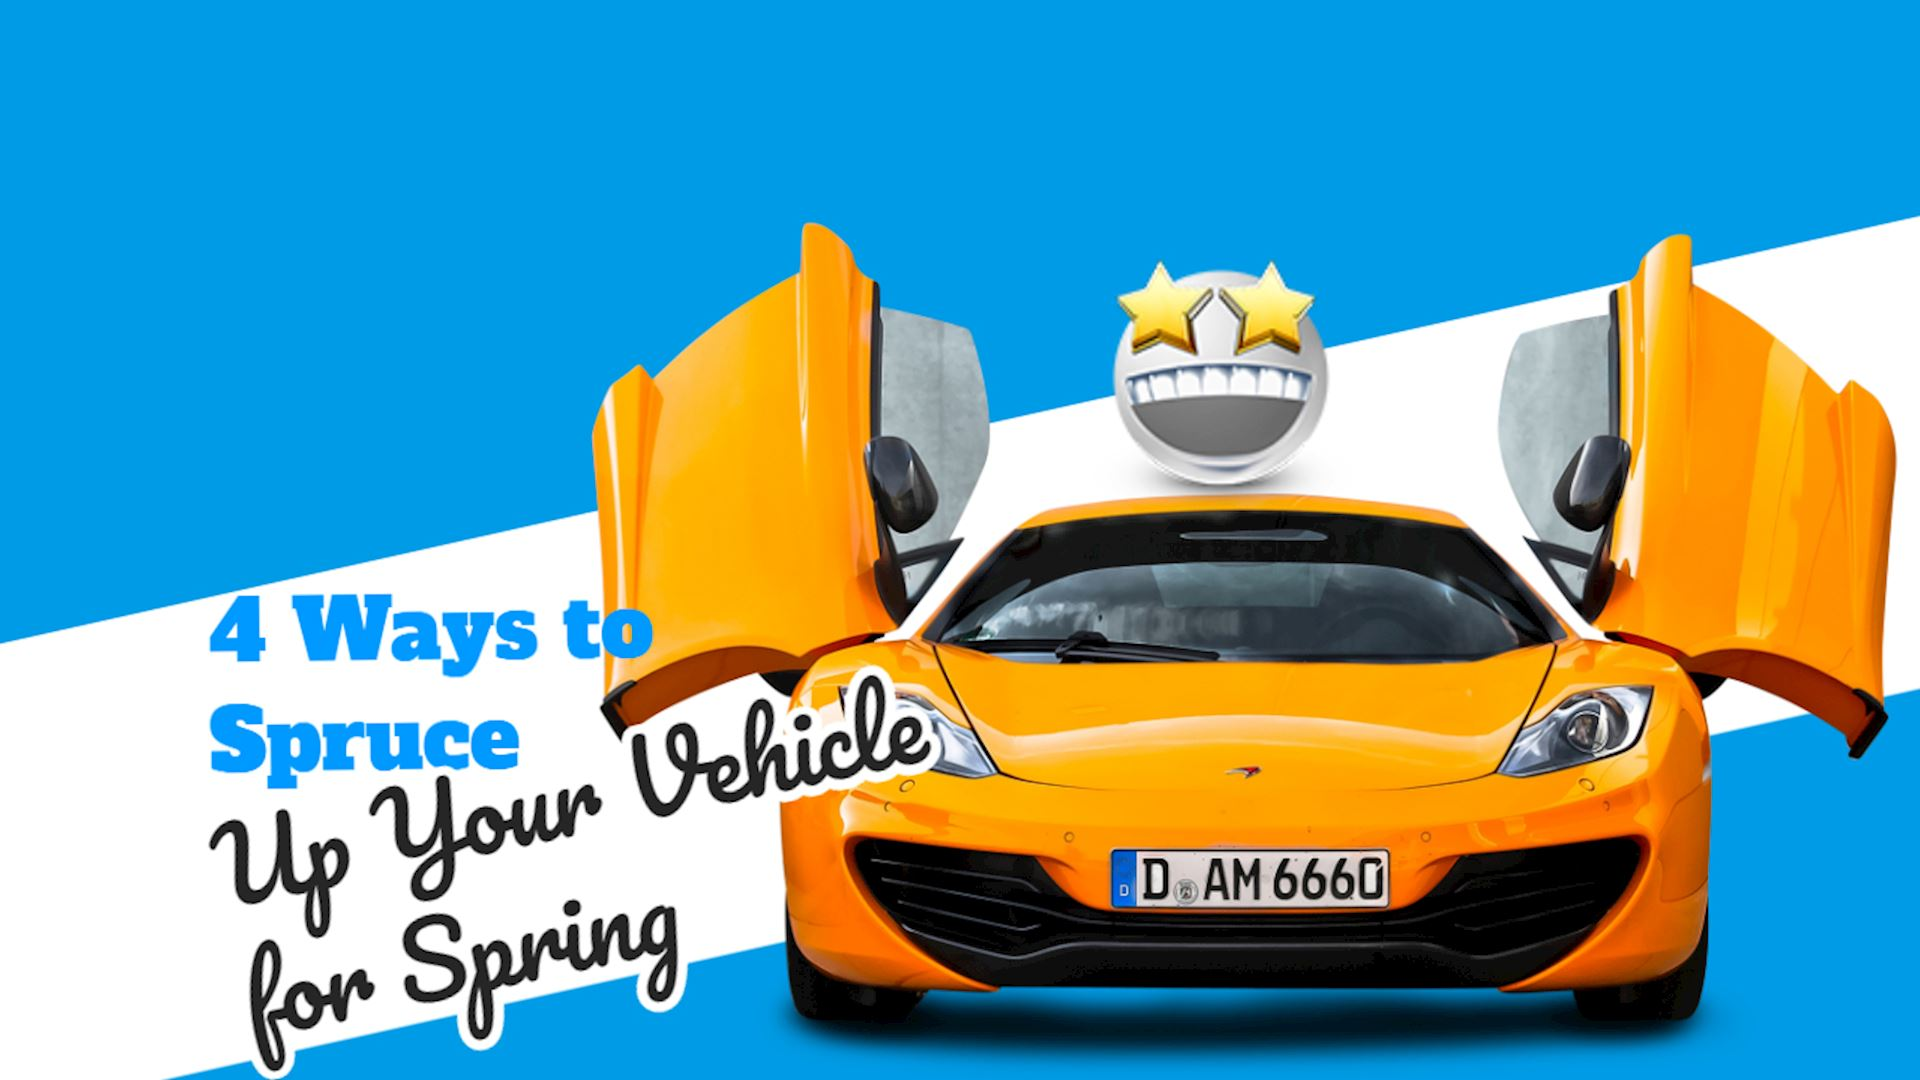 4 Ways to Spruce Up Your Vehicle for Spring